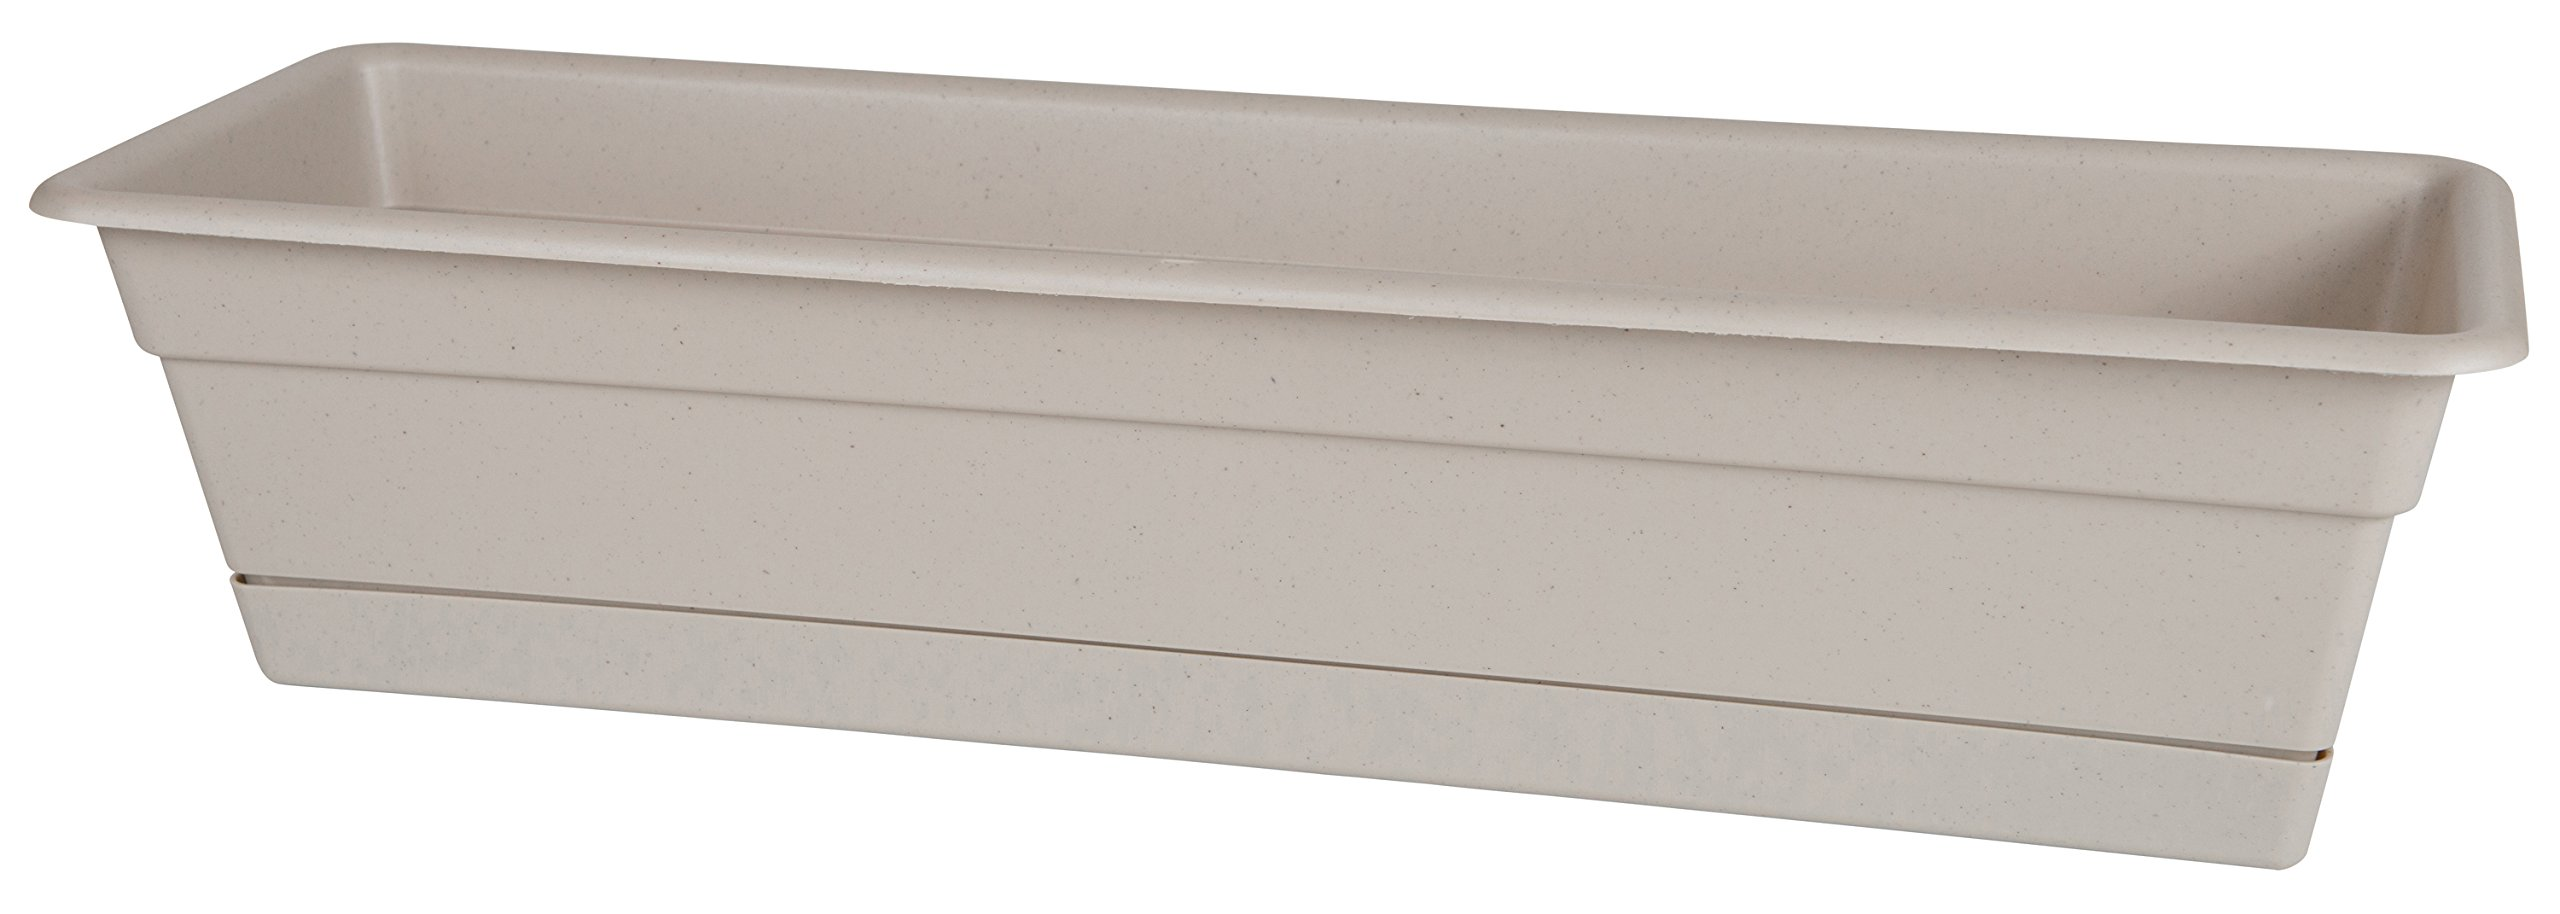 Bloem Dura Cotta Window Box Planter w/Tray, 18'', Taupe (DCBT18-35) by Bloem